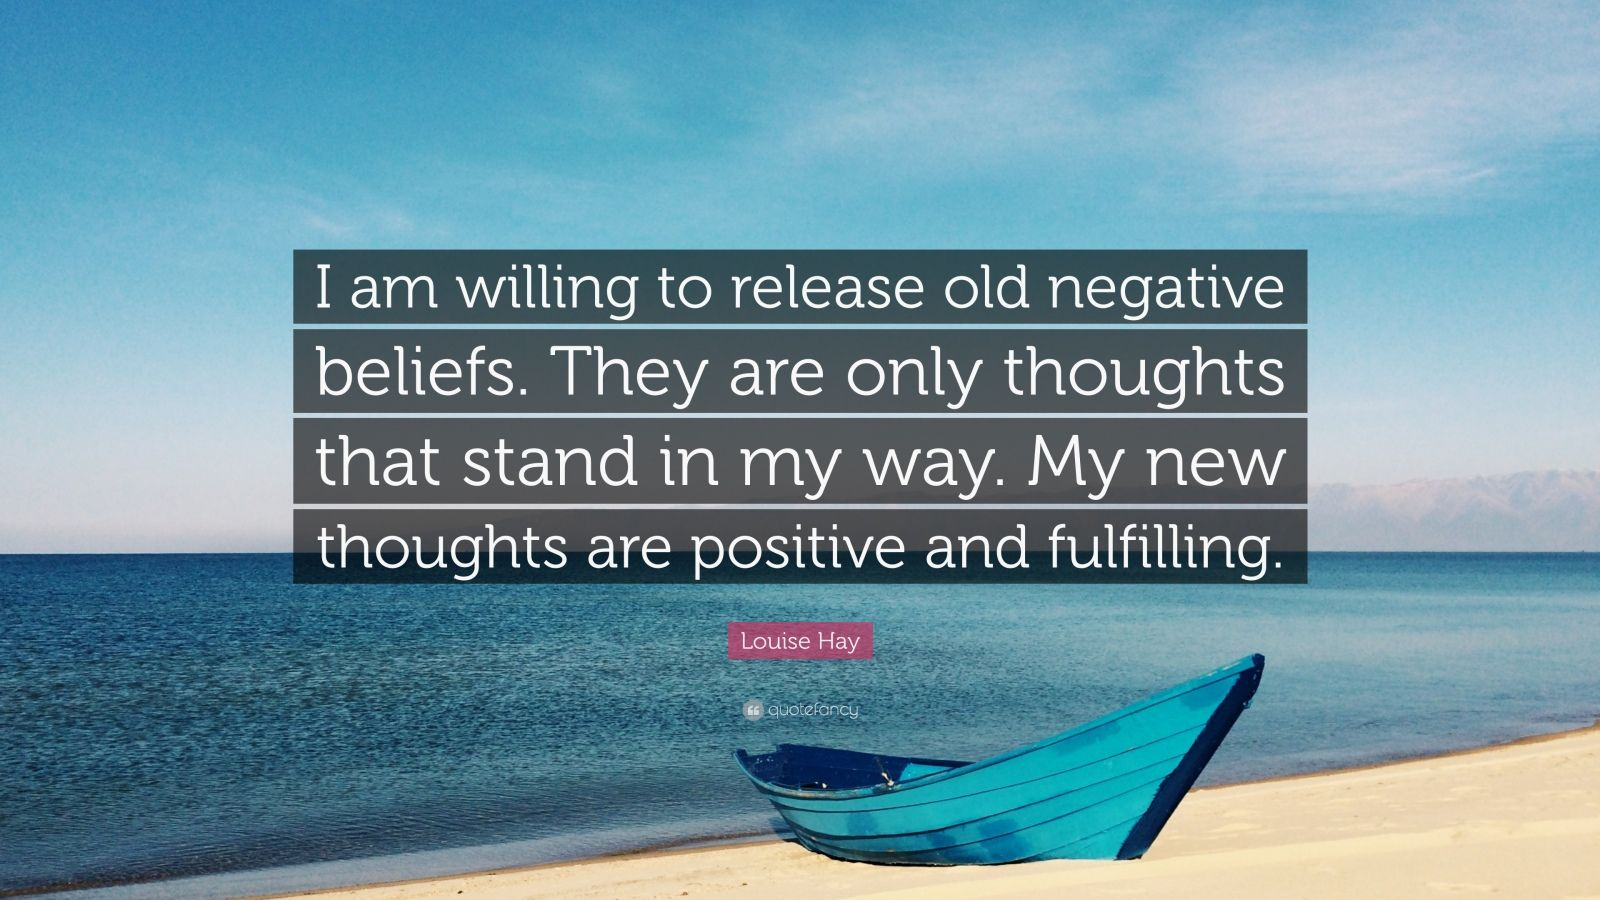 """Louise Hay Quote: """"I am willing to release old negative beliefs. They are only thoughts that stand in my way. My new thoughts are positive and fulfilling."""""""